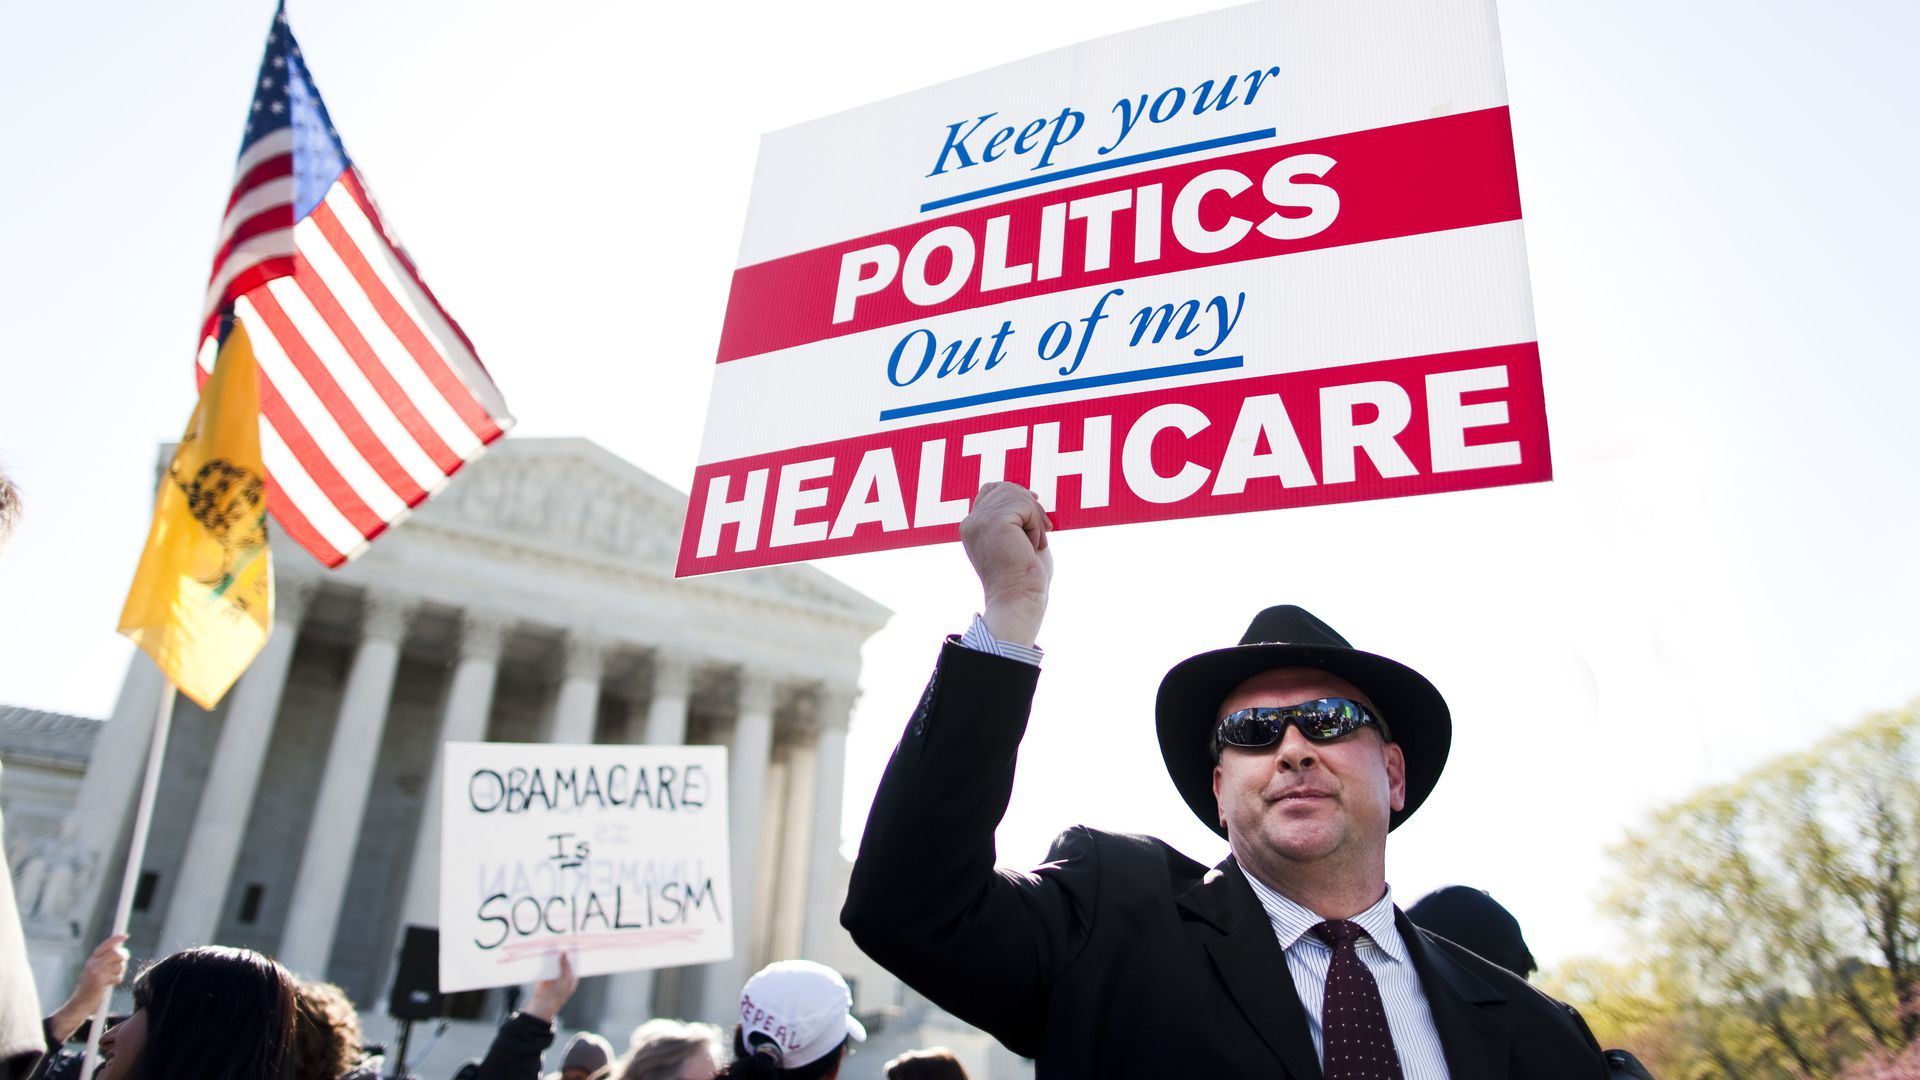 Protesters outside the Supreme Court waving signs about the ACA